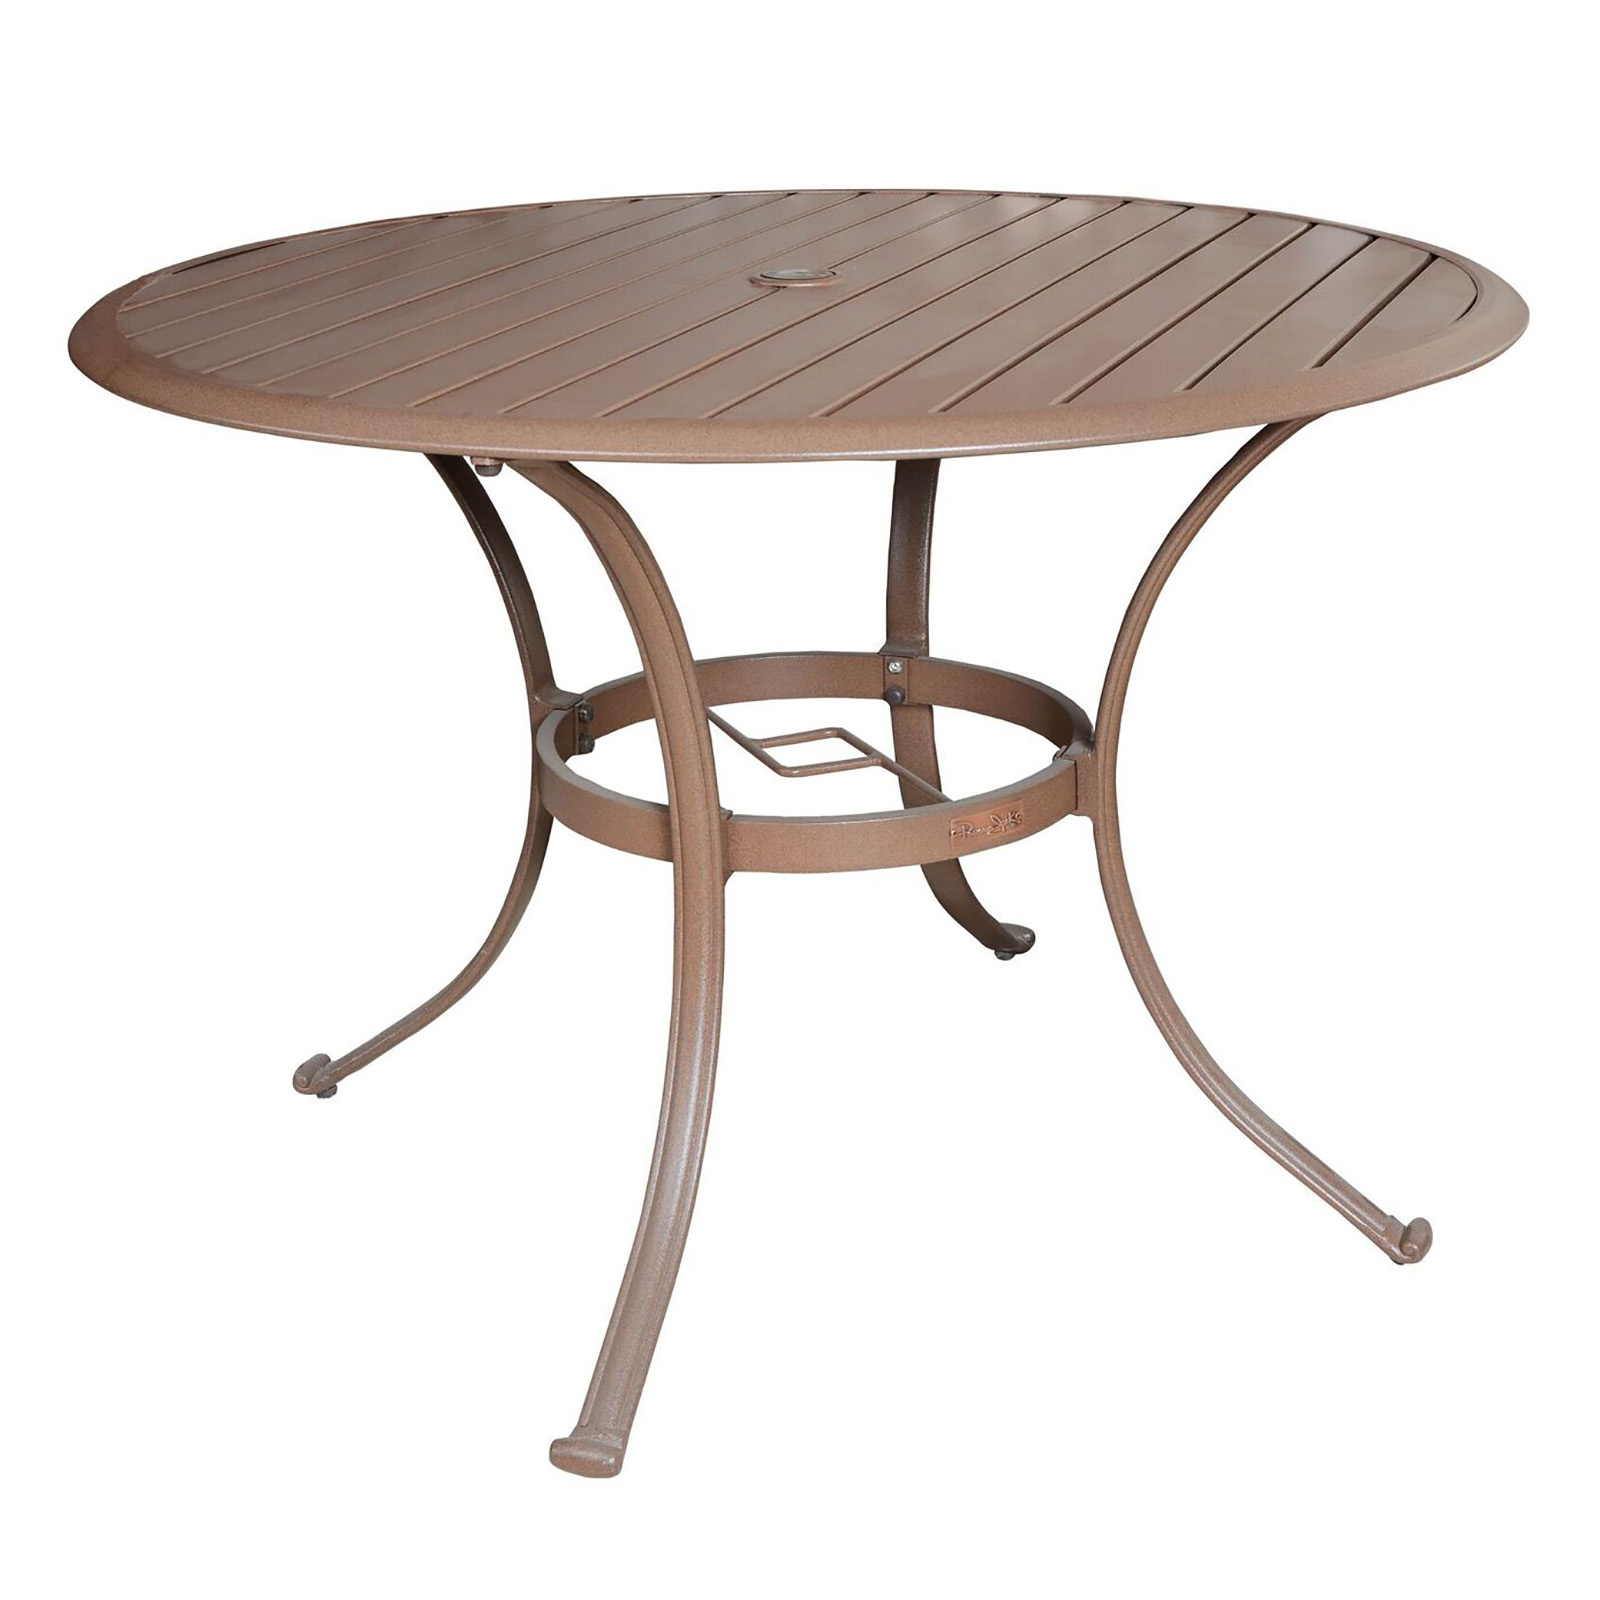 Panama Jack Island Breeze 48 In Round Slatted Aluminum Patio Dining Table Wi